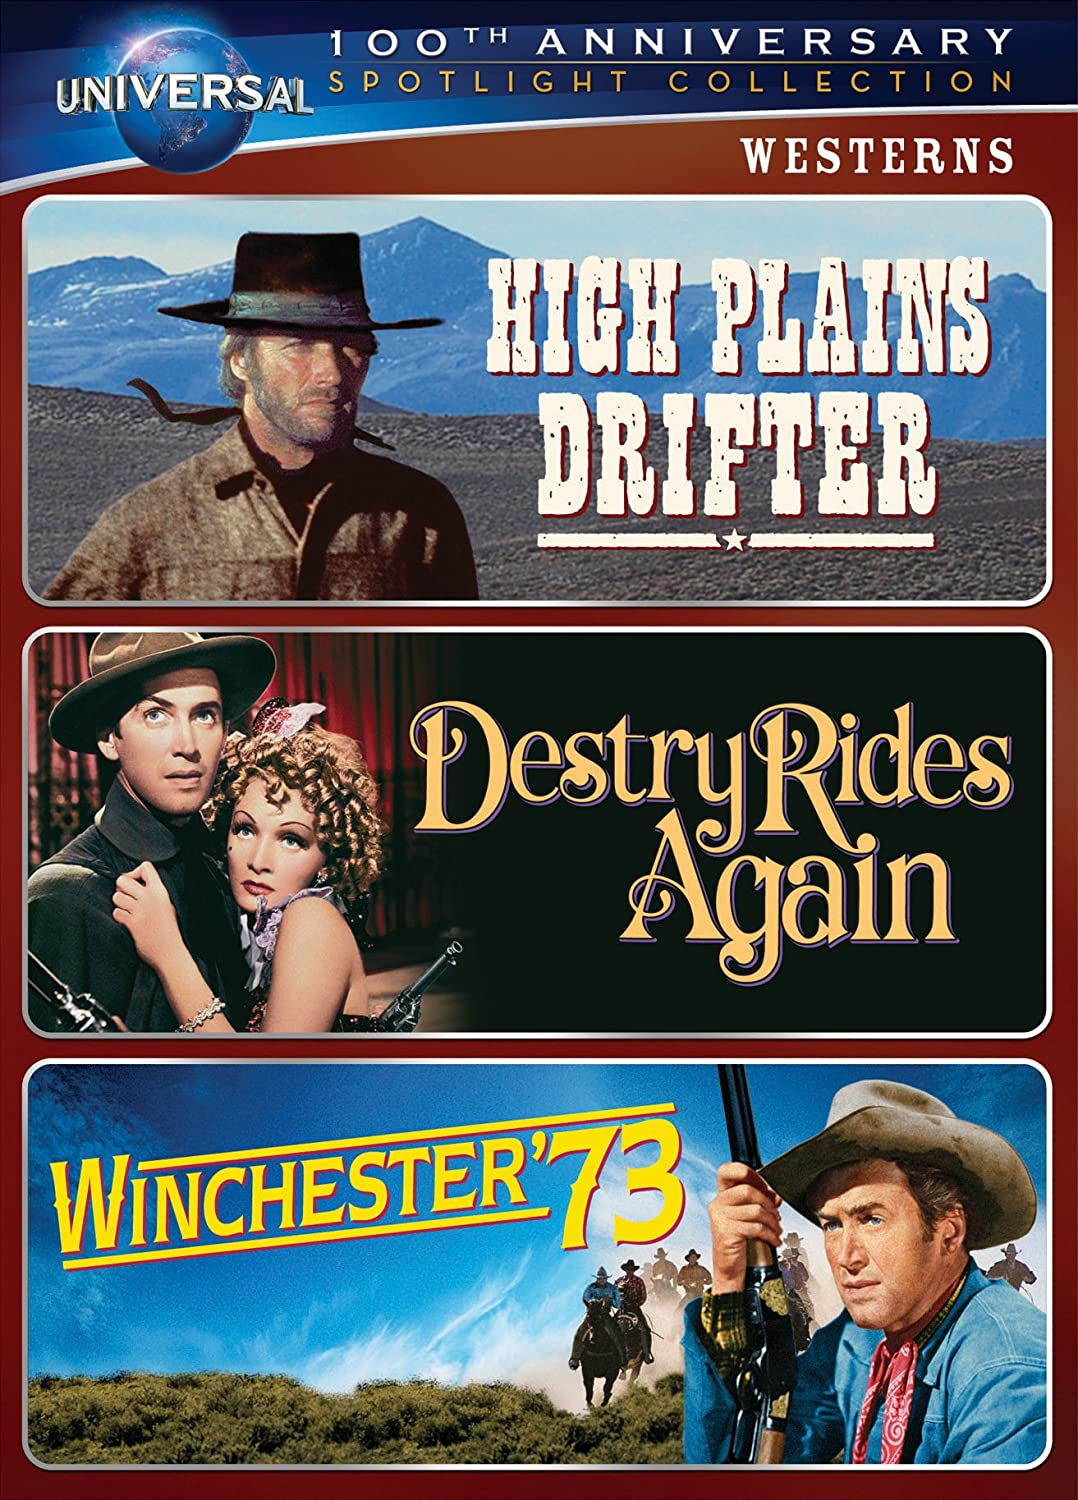 Amazon.com: Westerns Spotlight Collection [High Plains Drifter, Destry  Rides Again, Winchester '73] (Universal's 100th Anniversary): Clint  Eastwood, ...